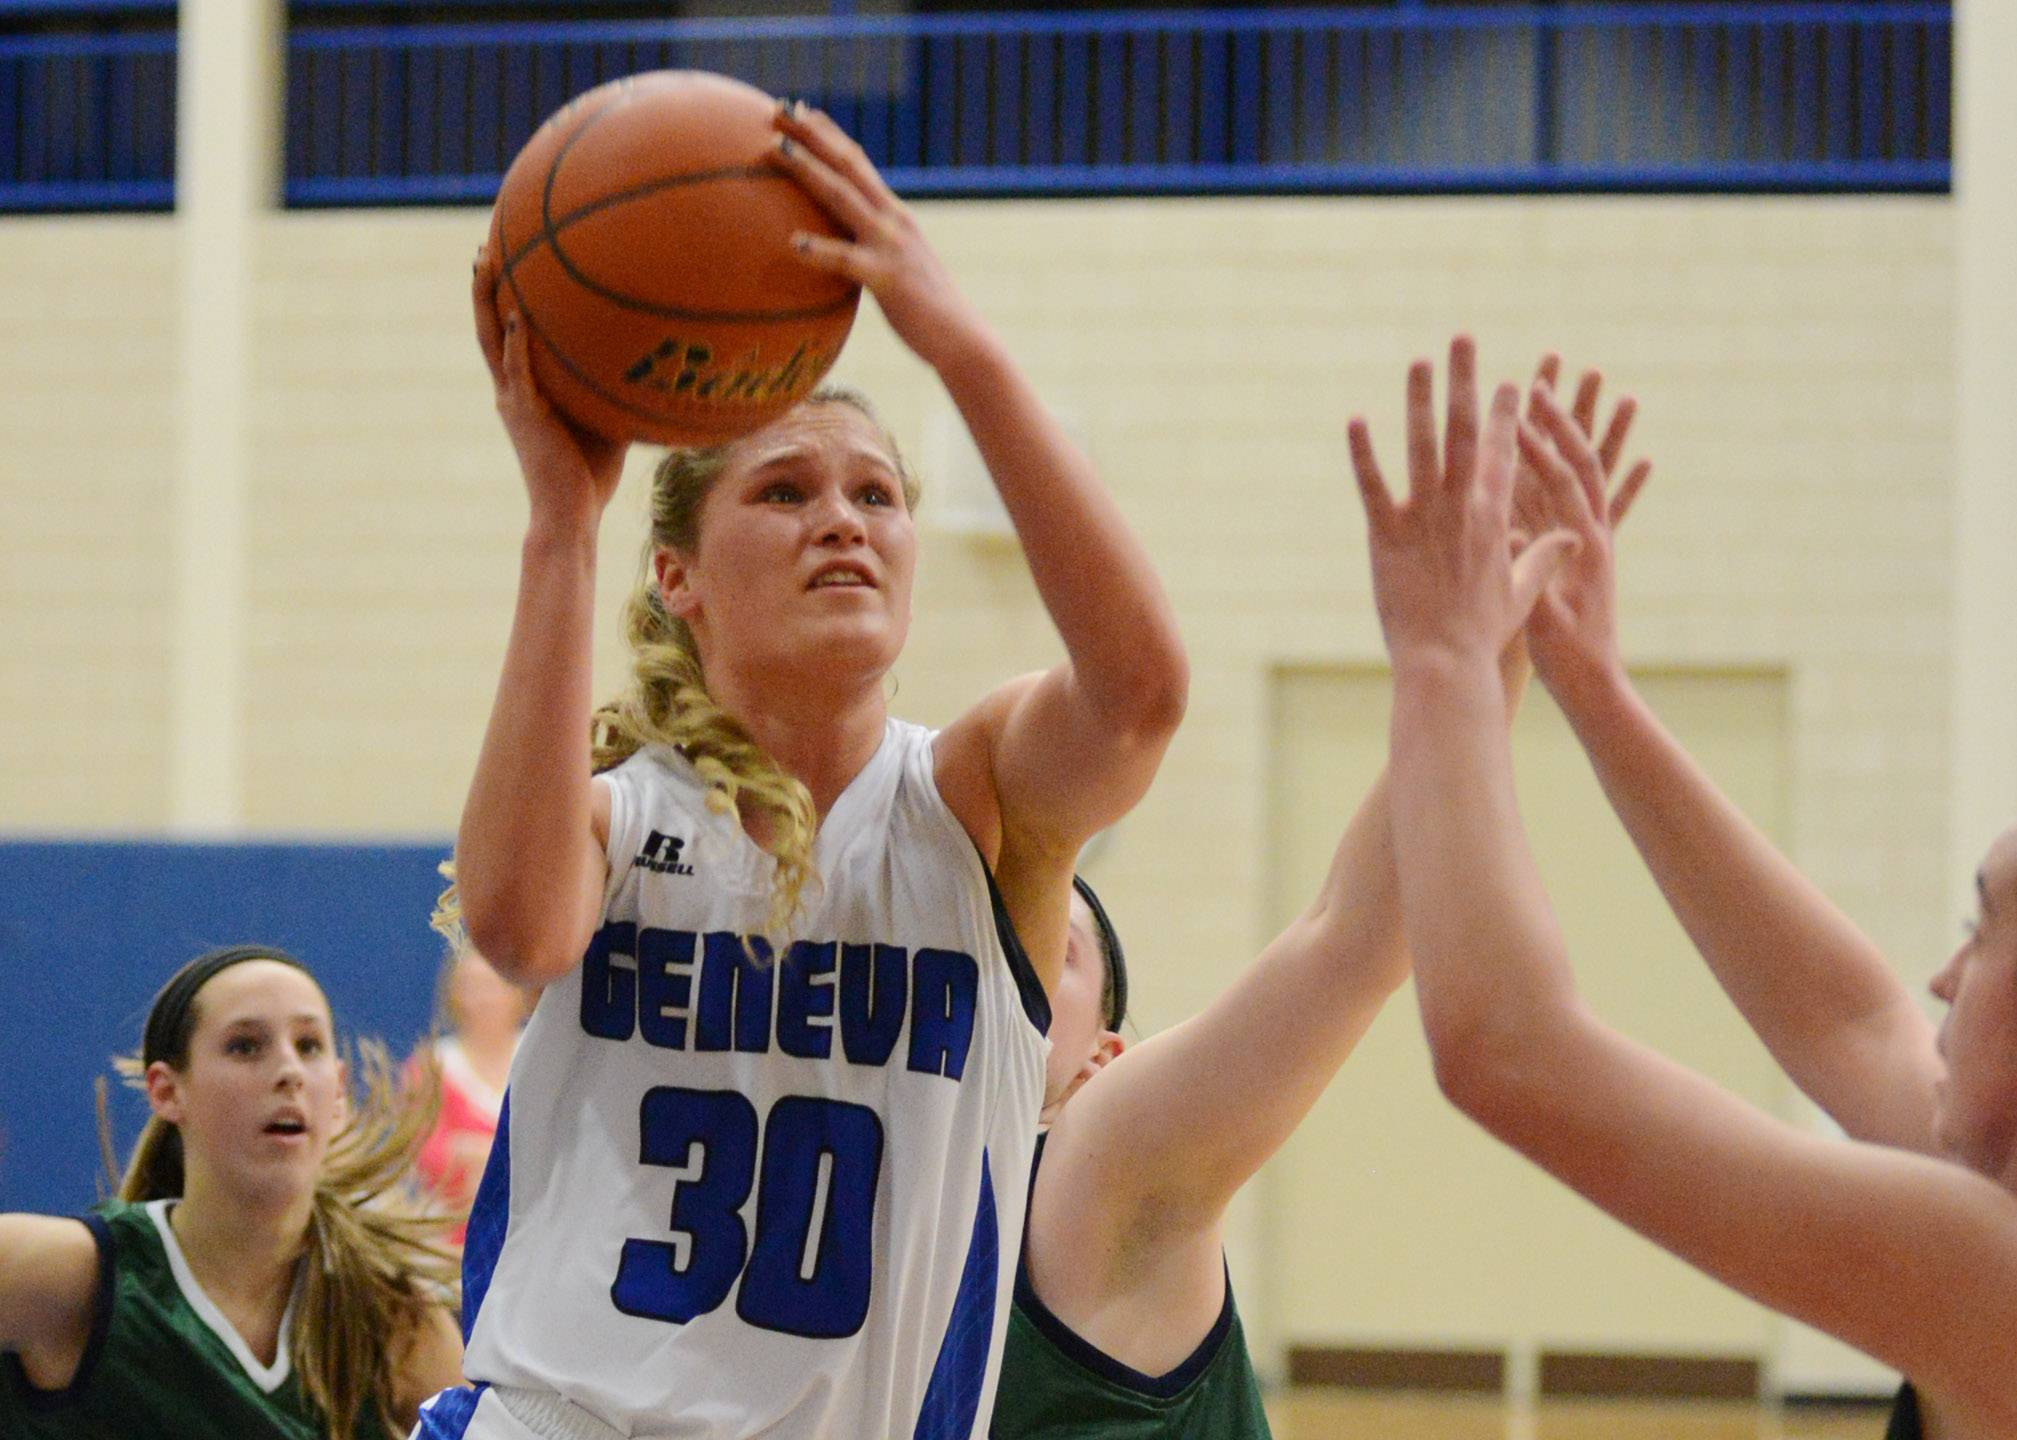 Images from the Bartlett vs. Geneva girls basketball game Thursday, February 13, 2014.